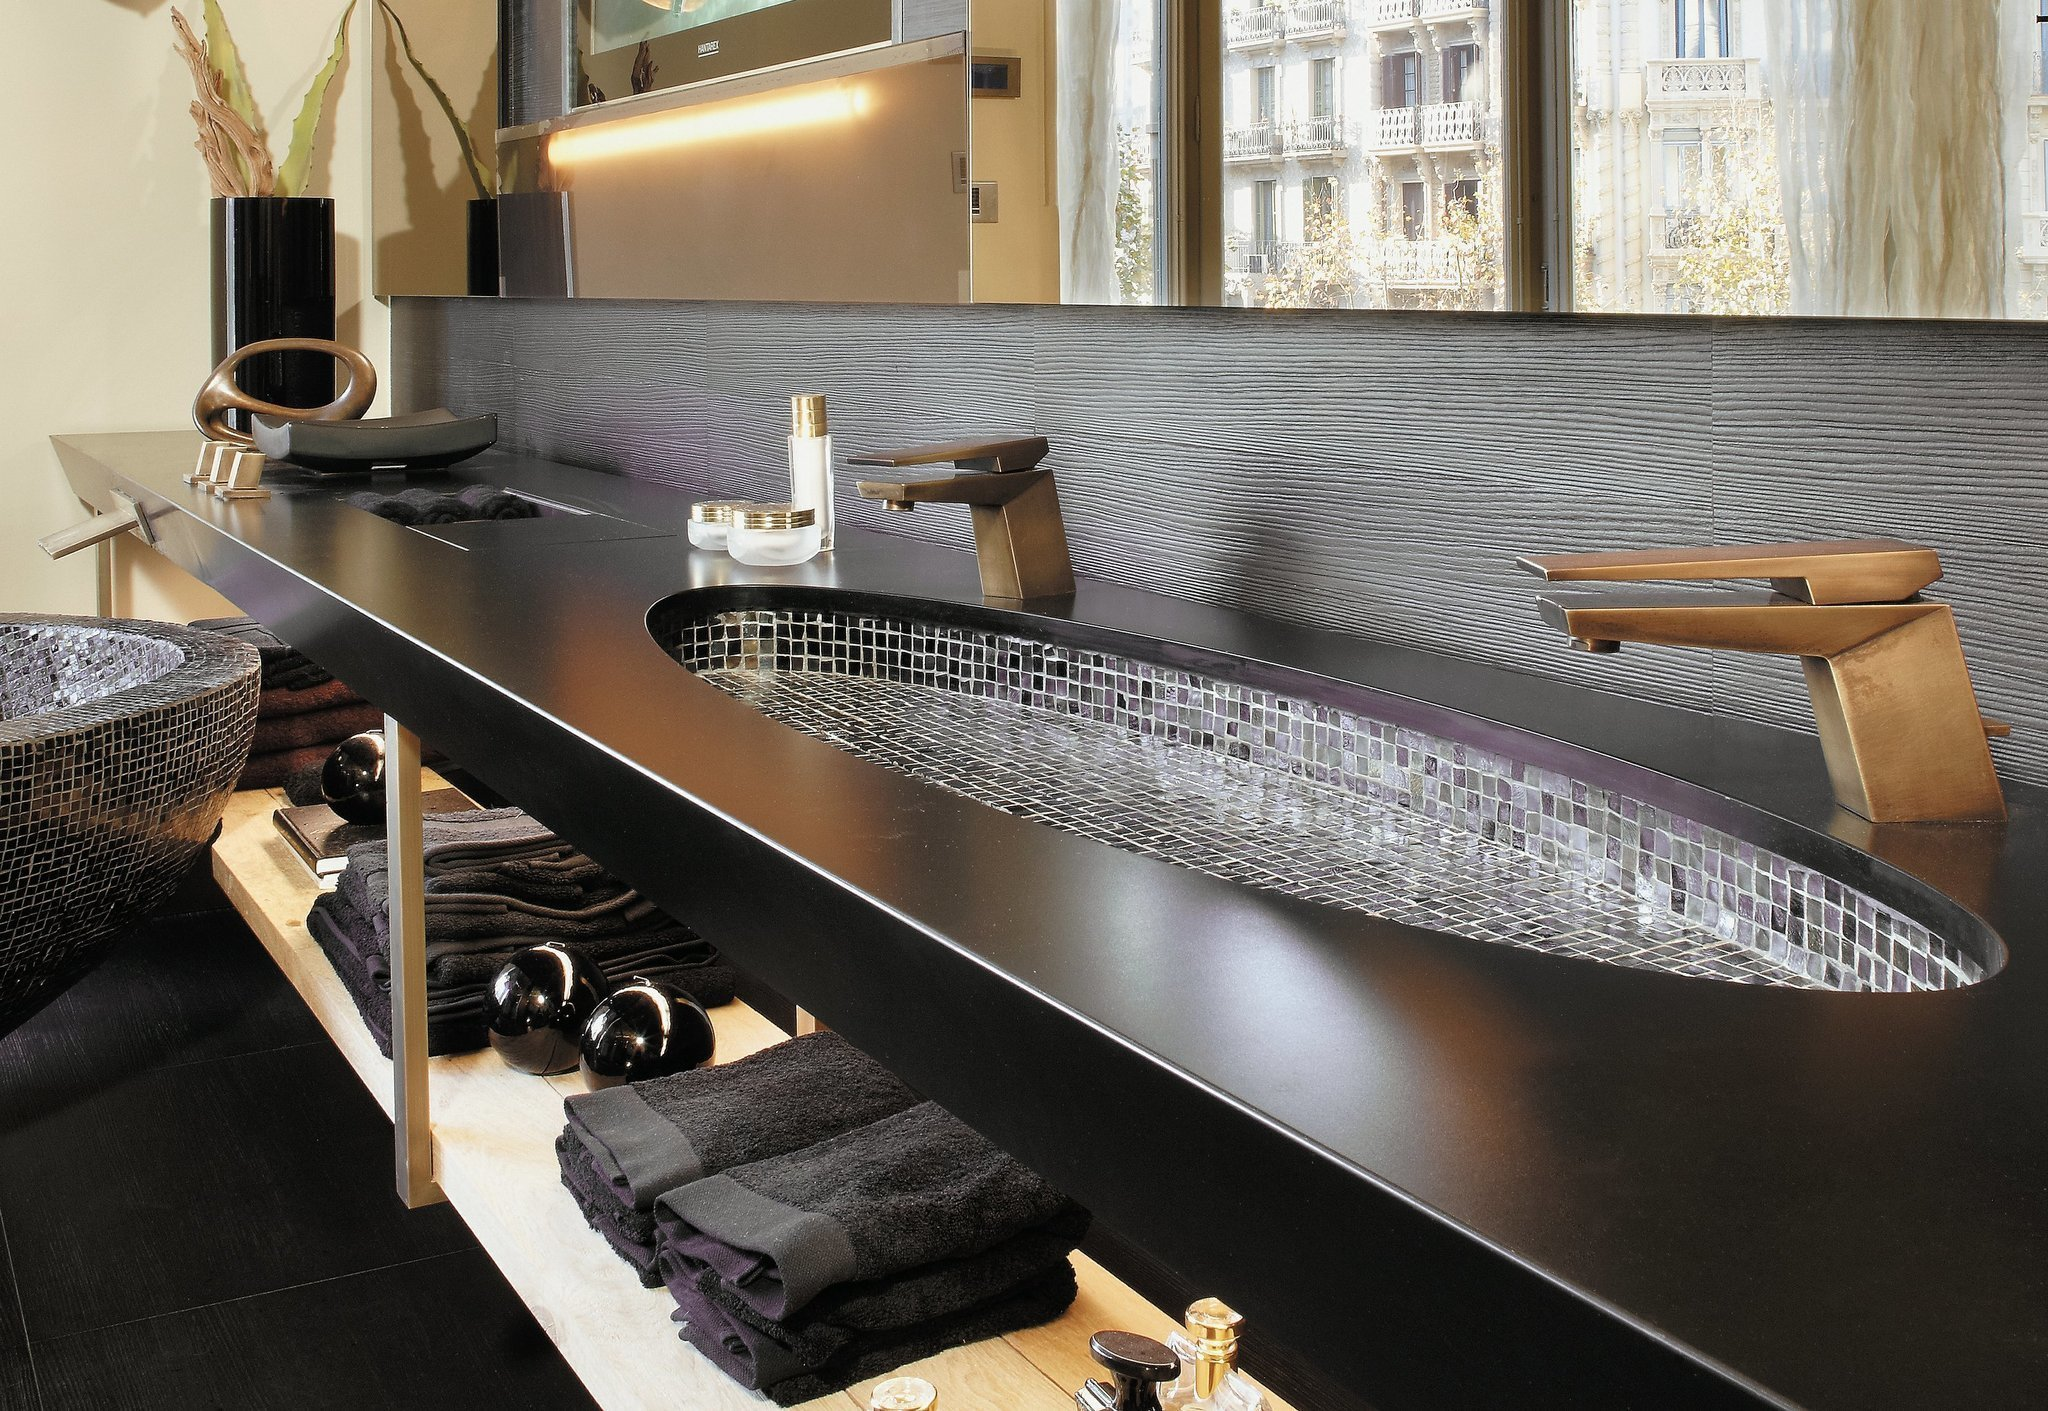 Kitchen, bath expo shows off refined finishes - The San Diego ...